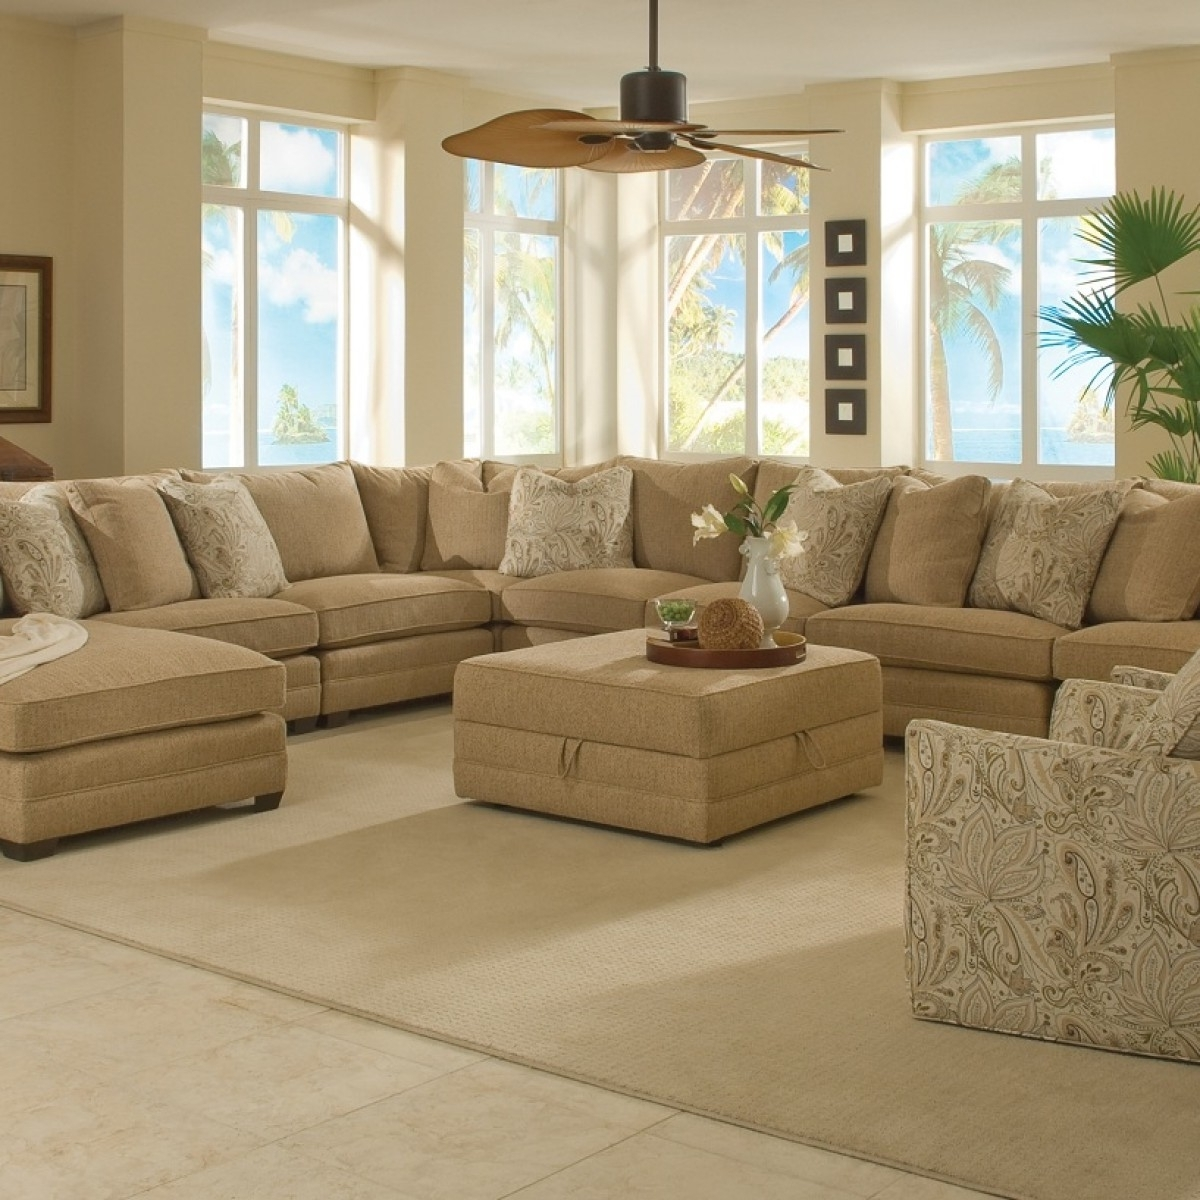 Extra Large Sectional Sofas Regarding Most Recently Released Factors To Consider Before Buying An Extra Large Sectional Sofa (View 3 of 15)